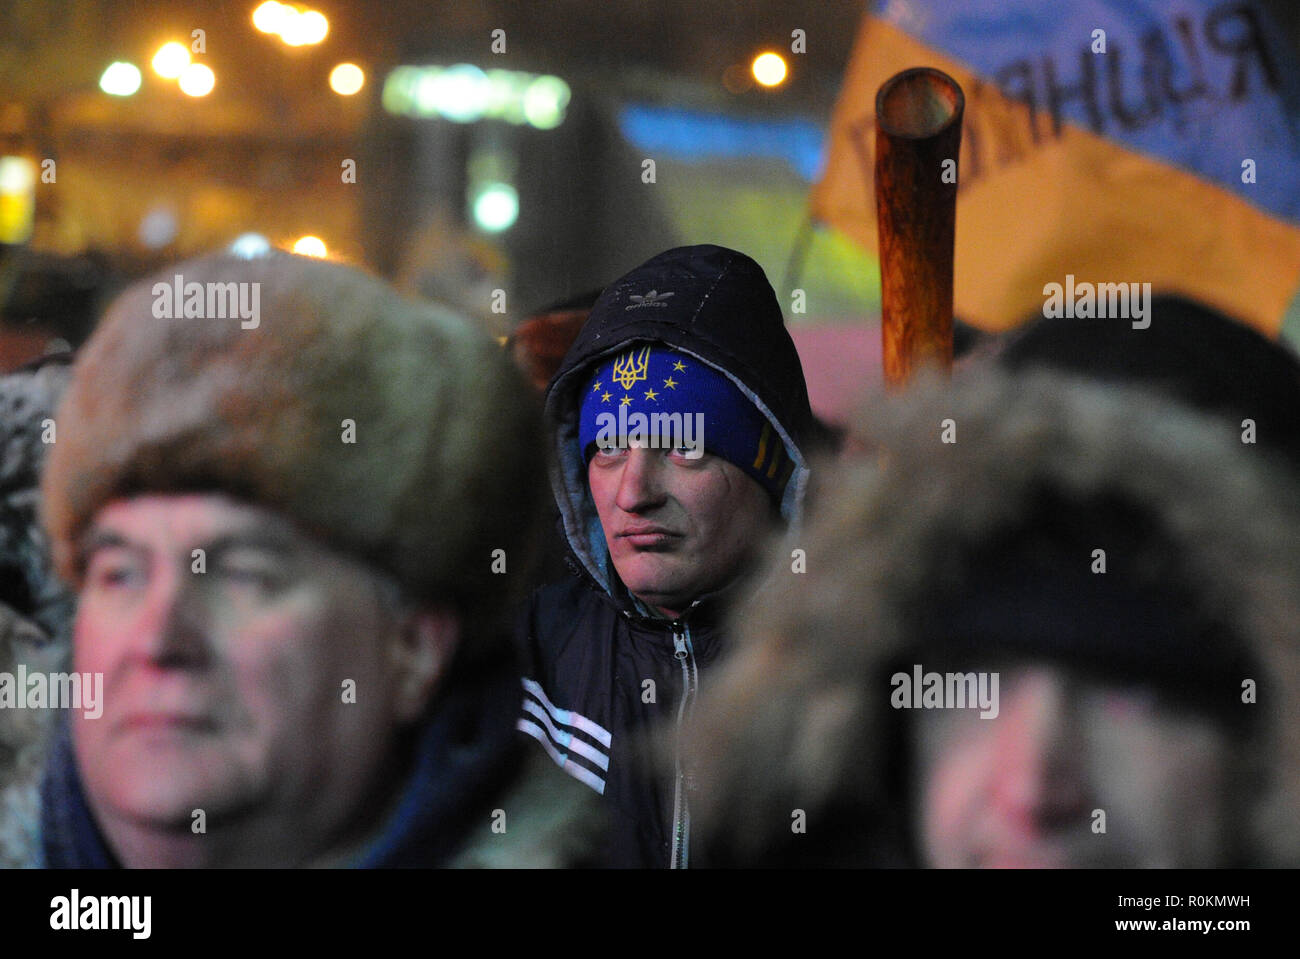 January 28, 2014 - Kiev, Ukraine: Supporters of the Svoboda ultra nationalist party listen to a speech delivered by their leader, Oleh Tiahnybok, in Independence Square, known as 'Maidan', as a tense standoff continues with police in the streets nearby. Des partisans du parti ultra nationaliste Svoboda ecoutent les discours de leur leader Oleh Tiahnybok sur la place Maidan a Kiev. *** FRANCE OUT / NO SALES TO FRENCH MEDIA *** - Stock Image